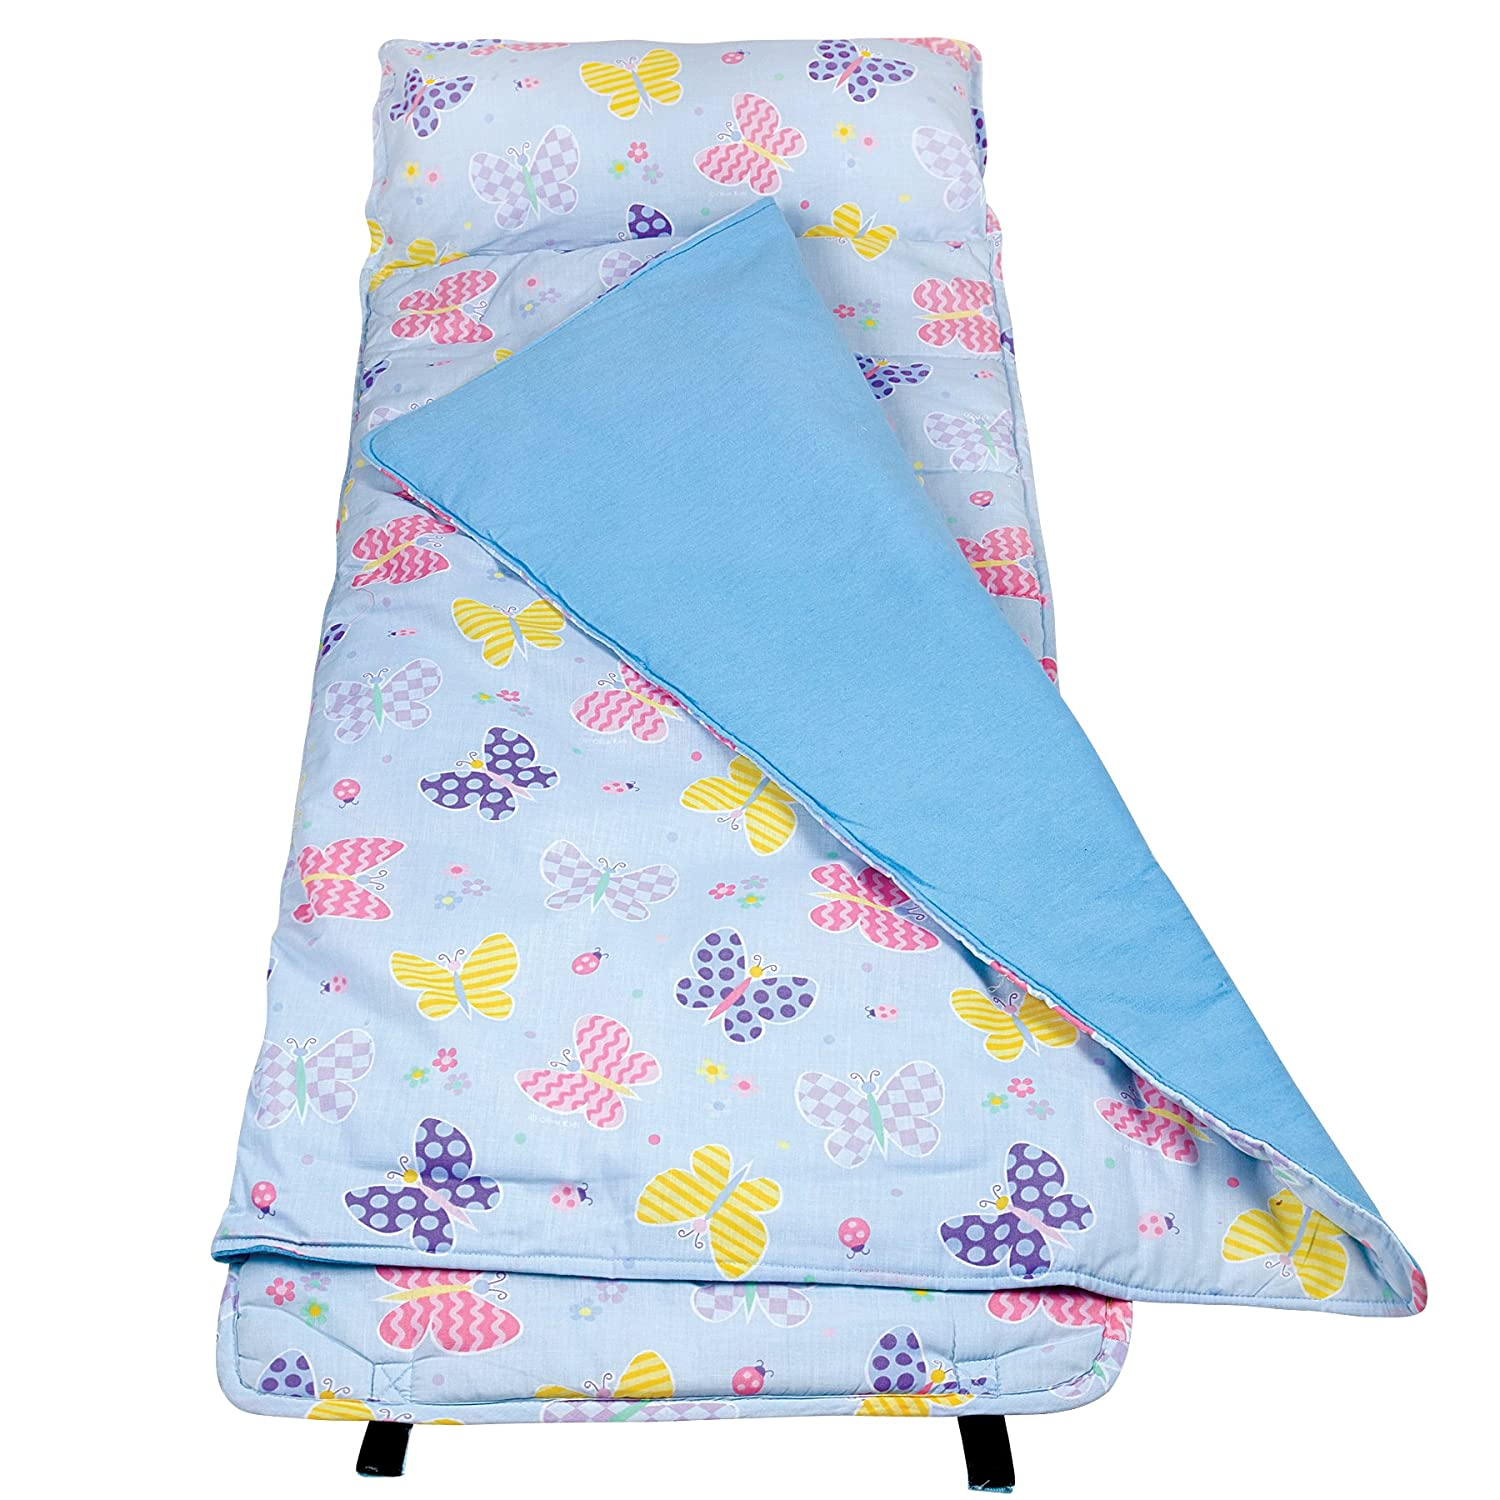 child mat and mats appealing daycare baby warm your nap kids keeps personalized